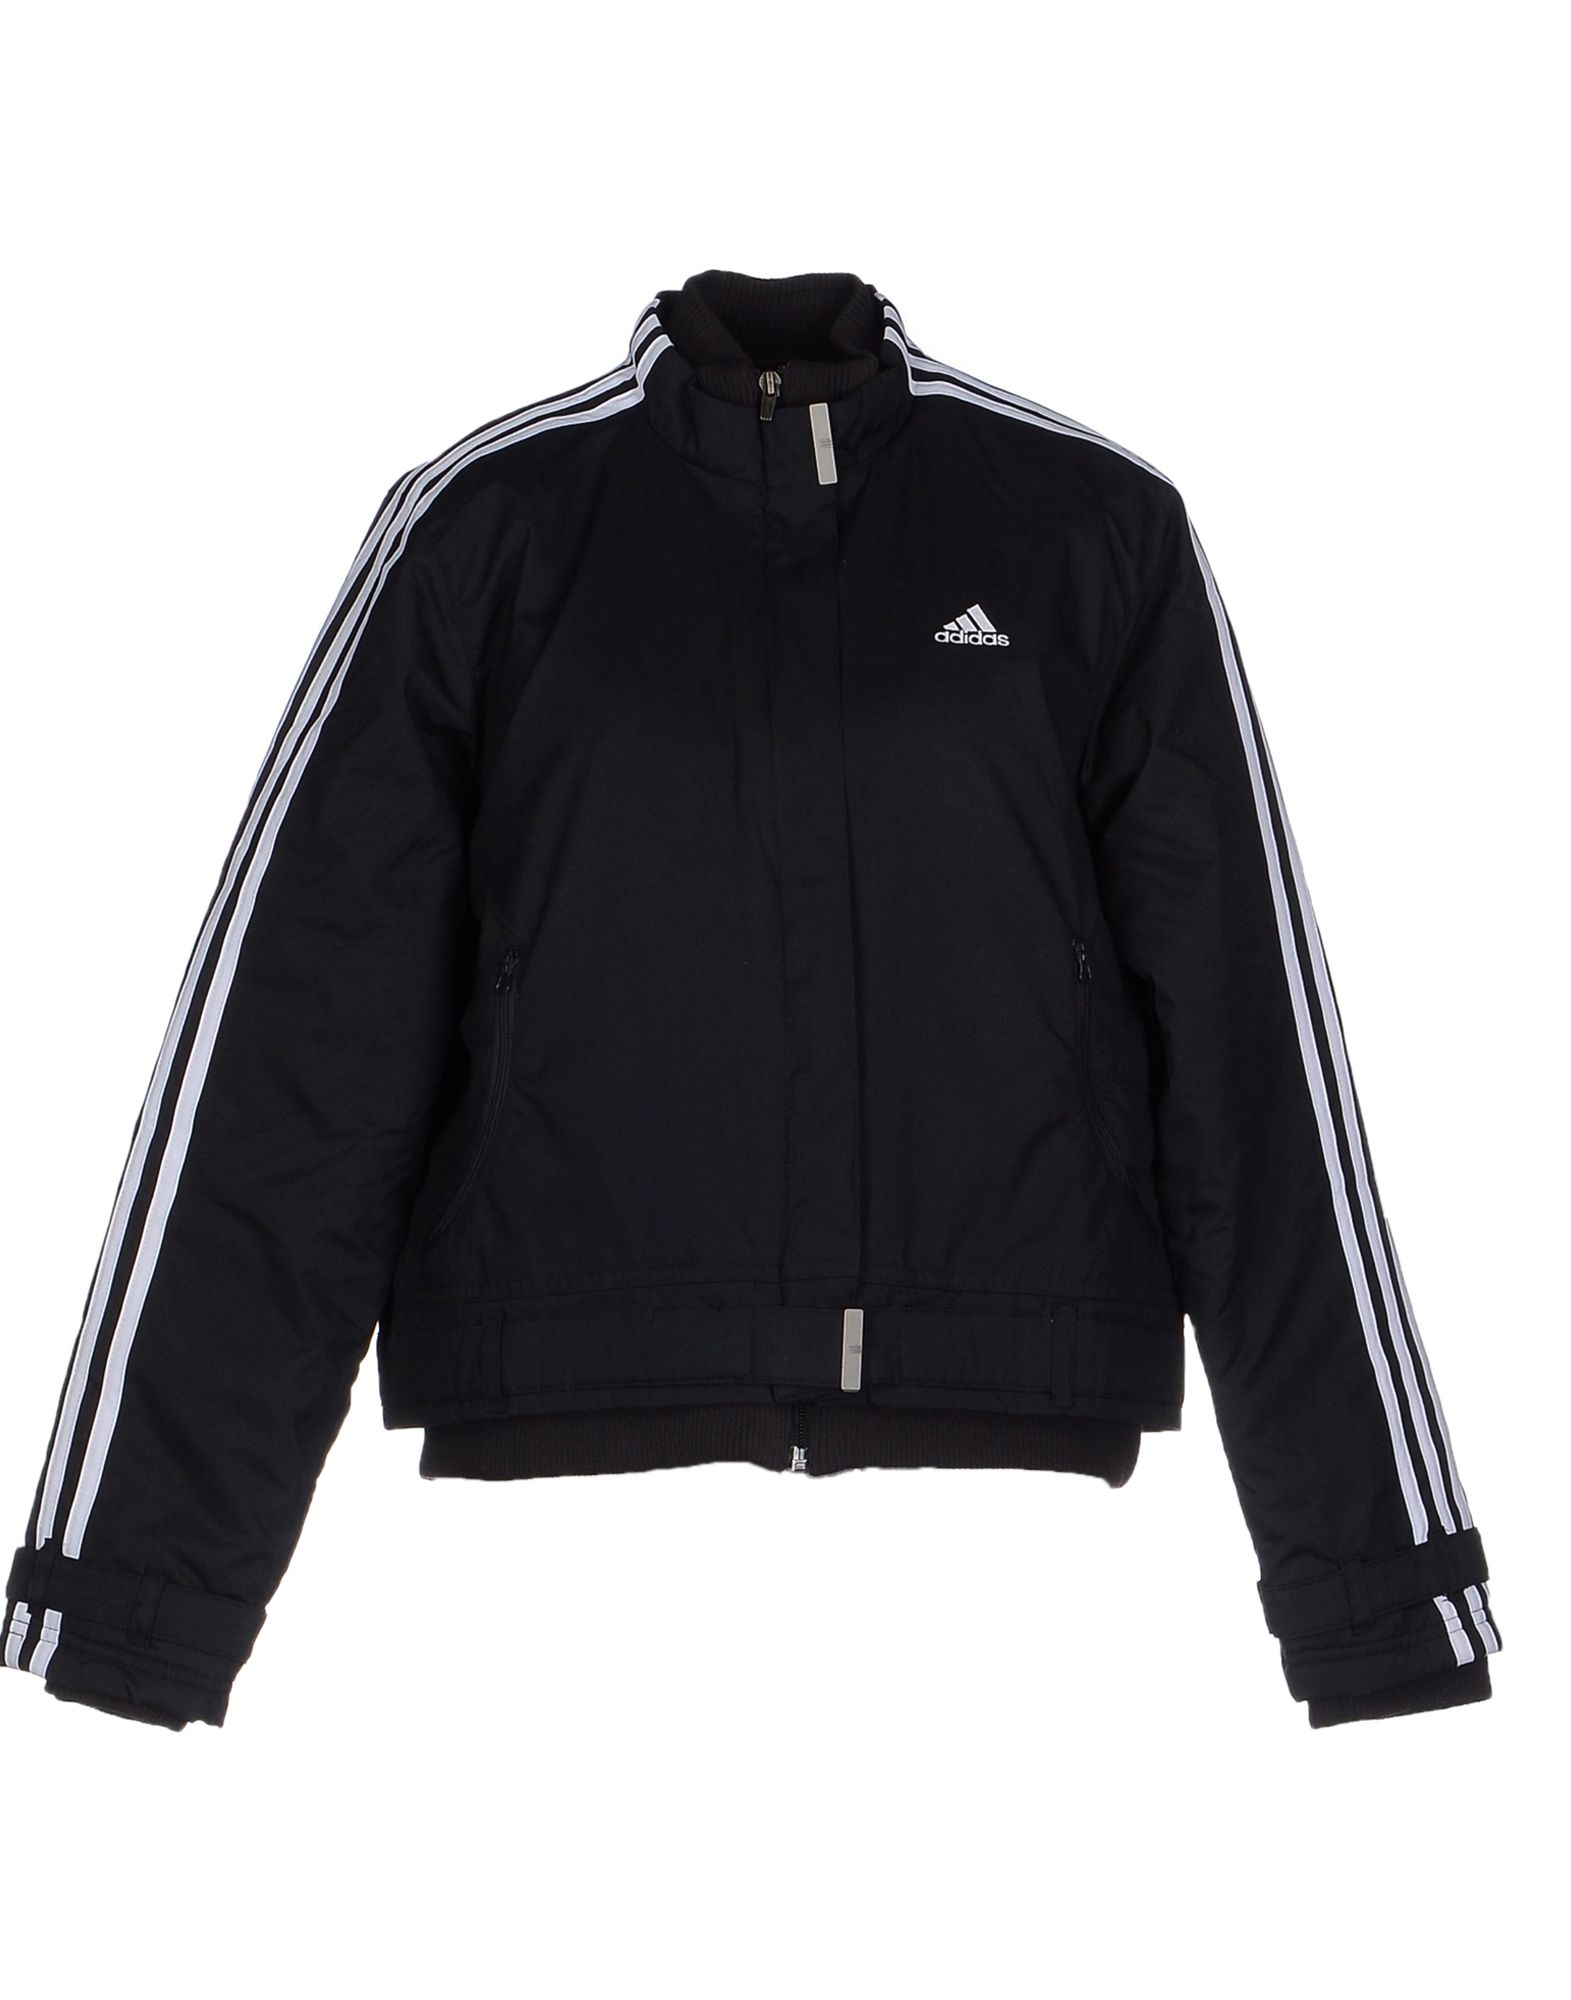 adidas jacket in black lyst. Black Bedroom Furniture Sets. Home Design Ideas